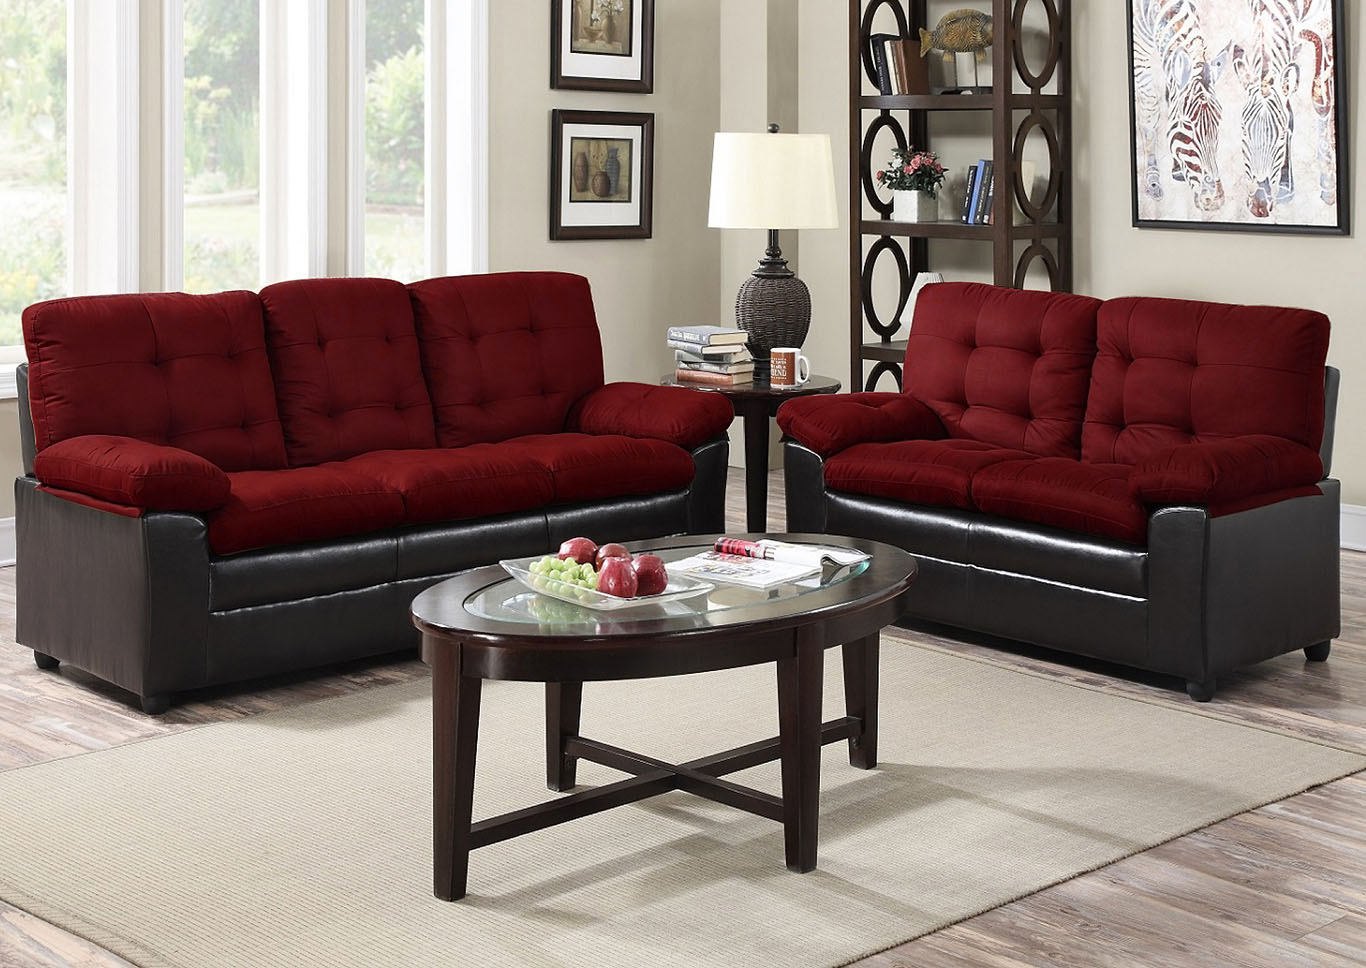 Burgundy Microfiber Sofa,Global Trading